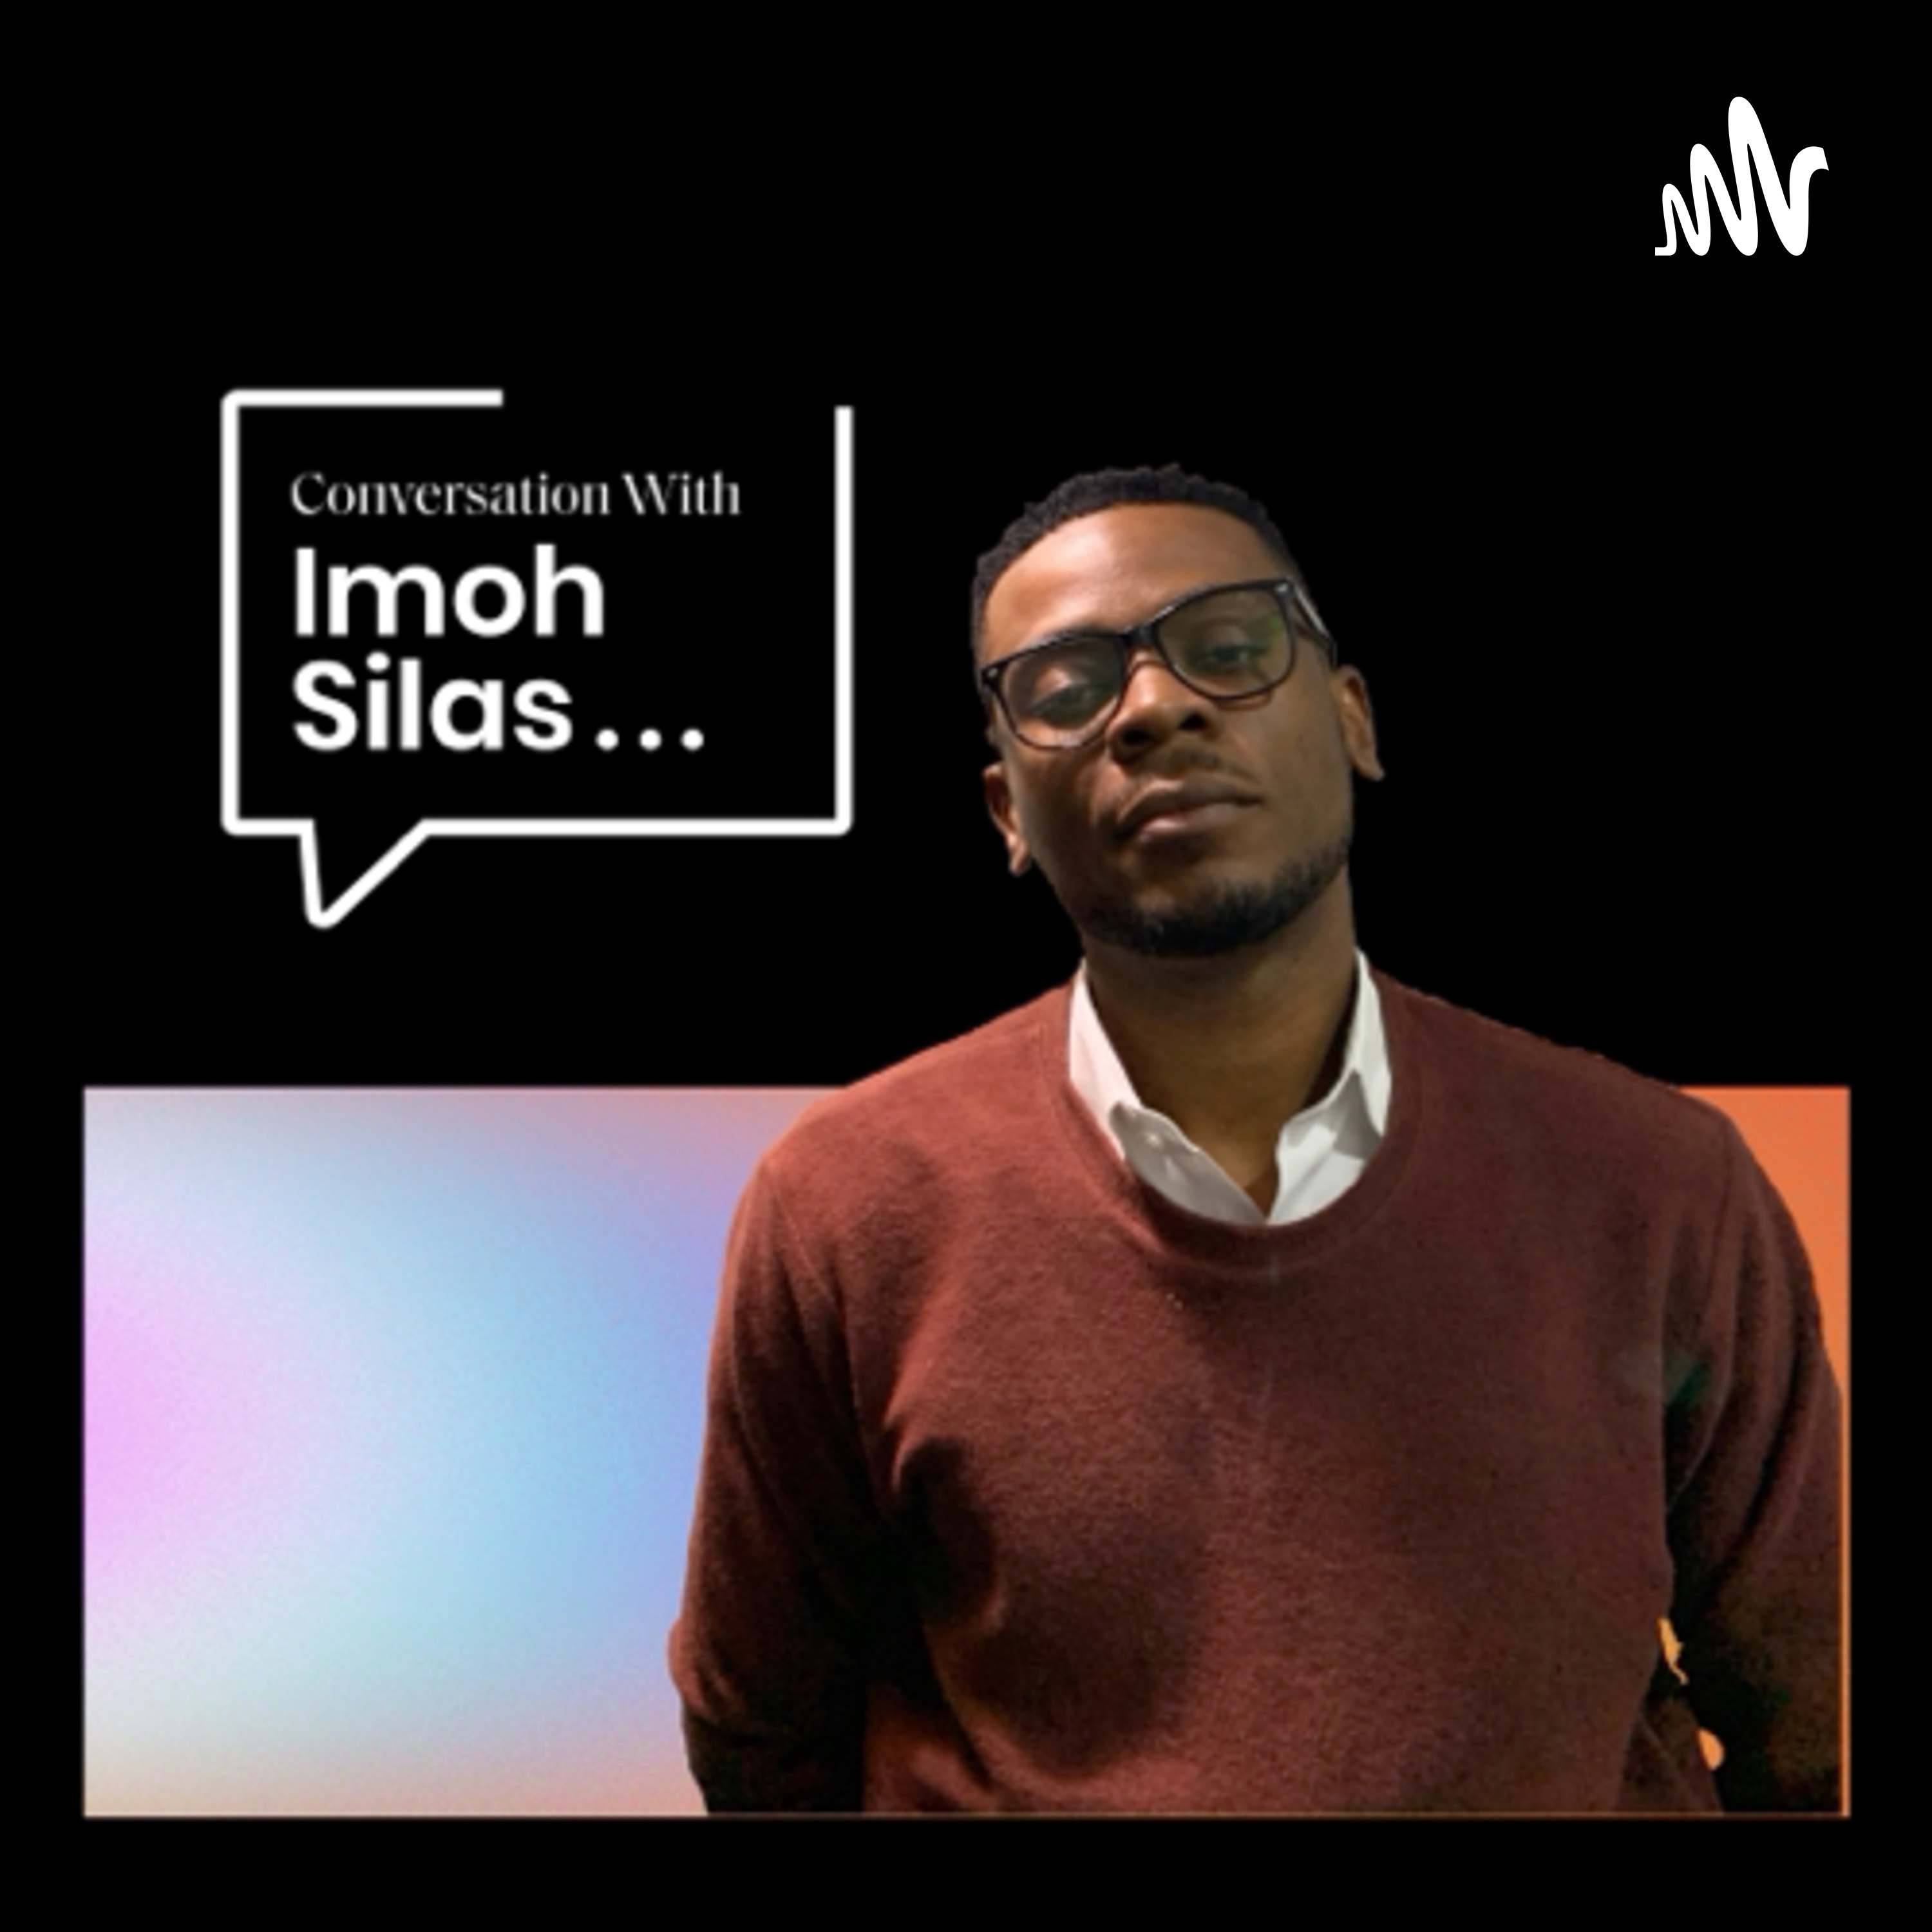 Conversation With Imoh Silas